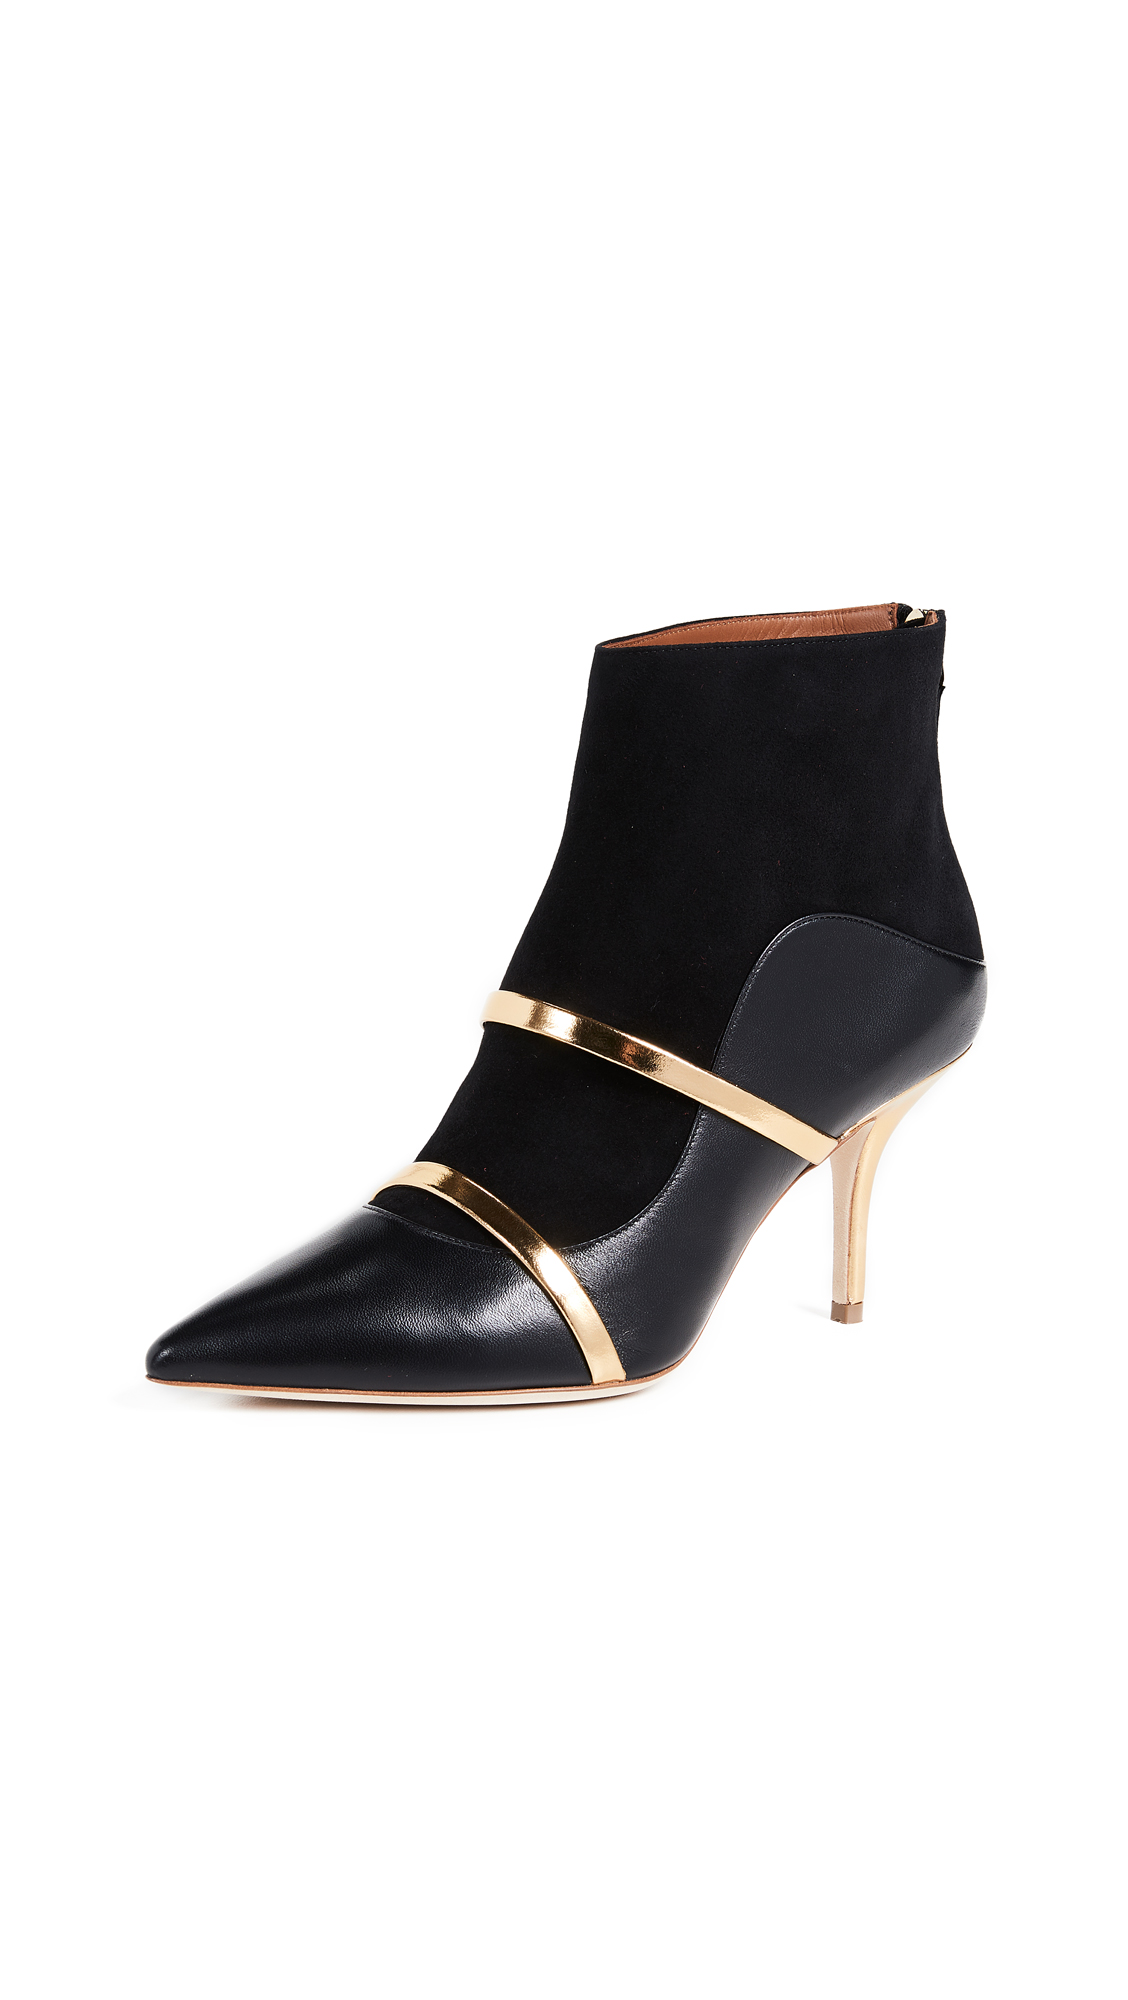 Malone Souliers by Roy Luwolt Madison 70 Booties - Black/Black/Gold